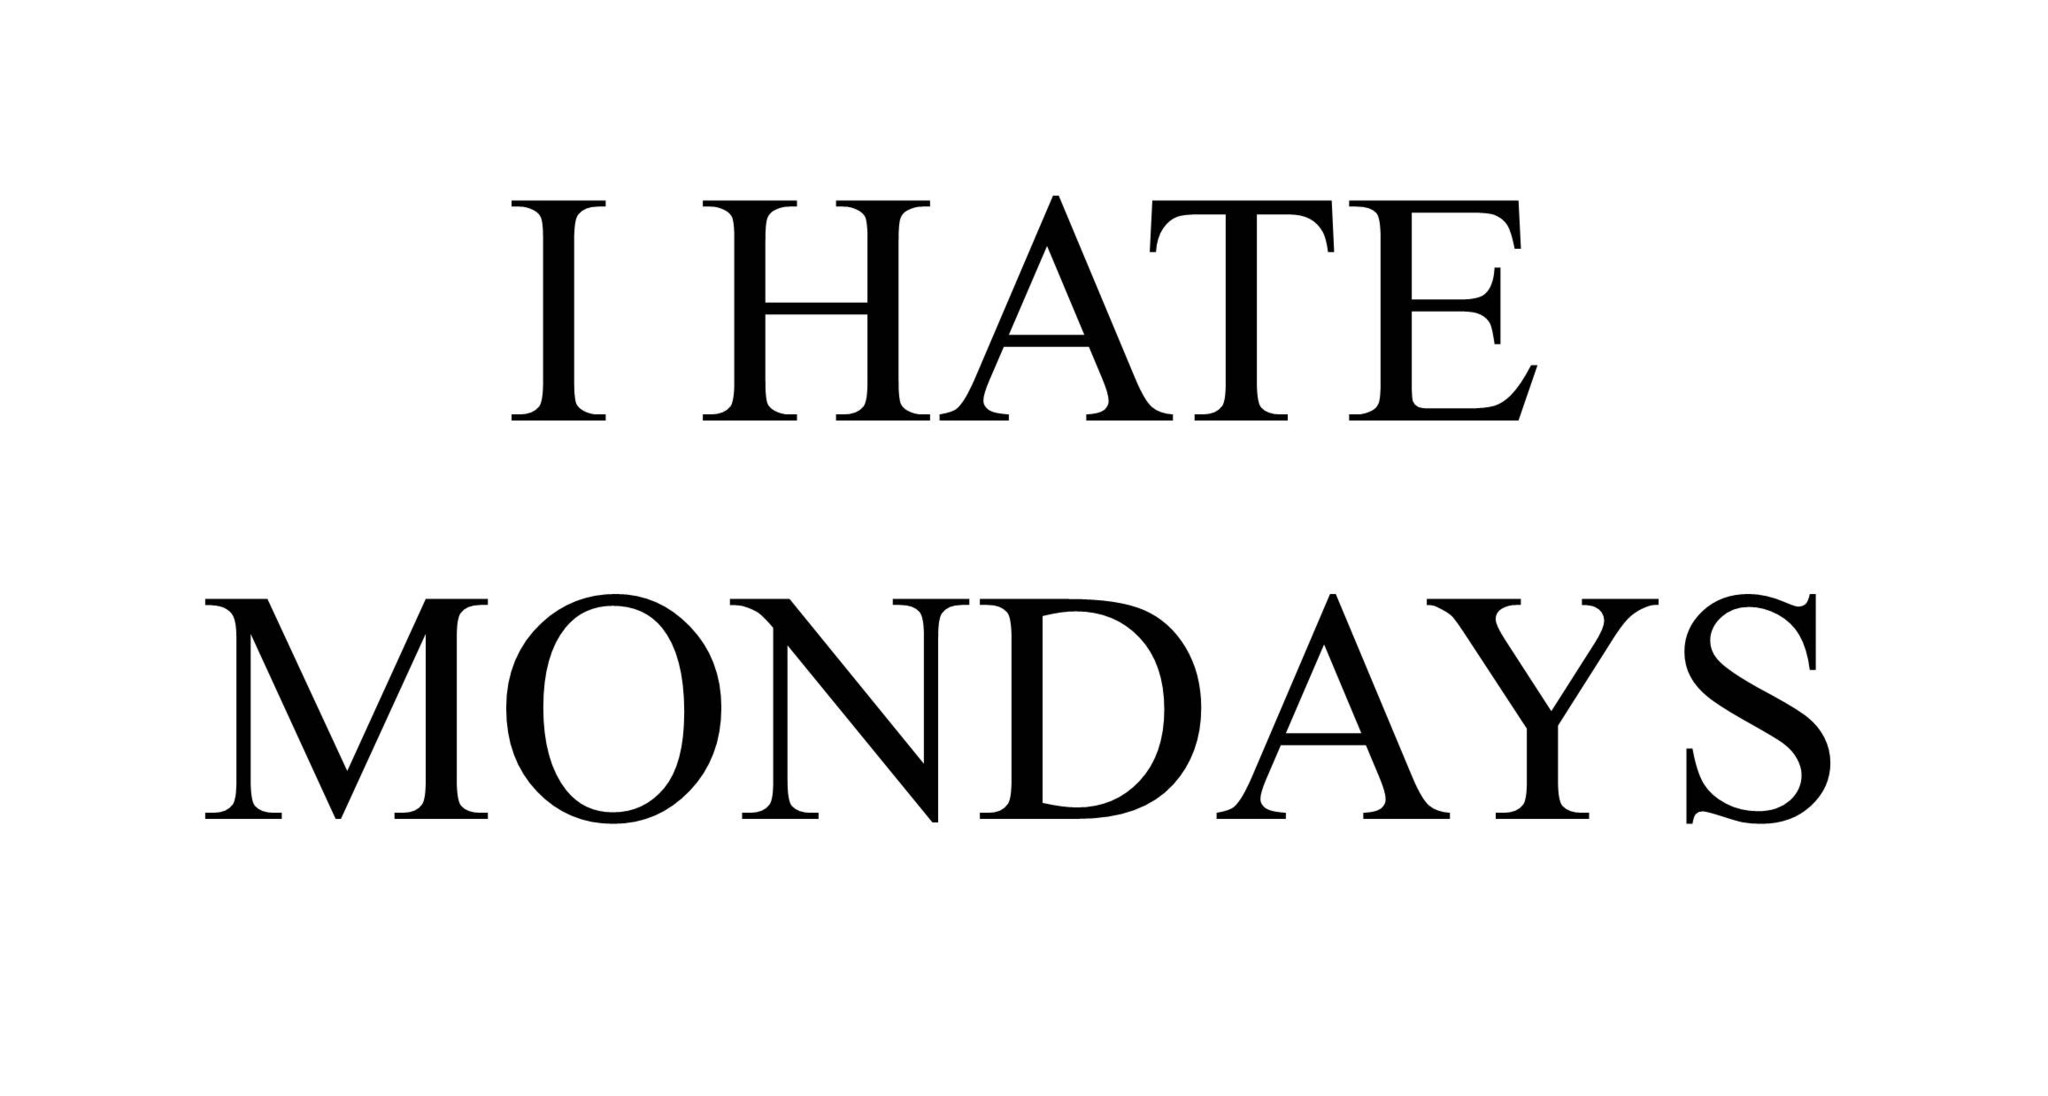 I Hate Mondays Facebook Cover Photo